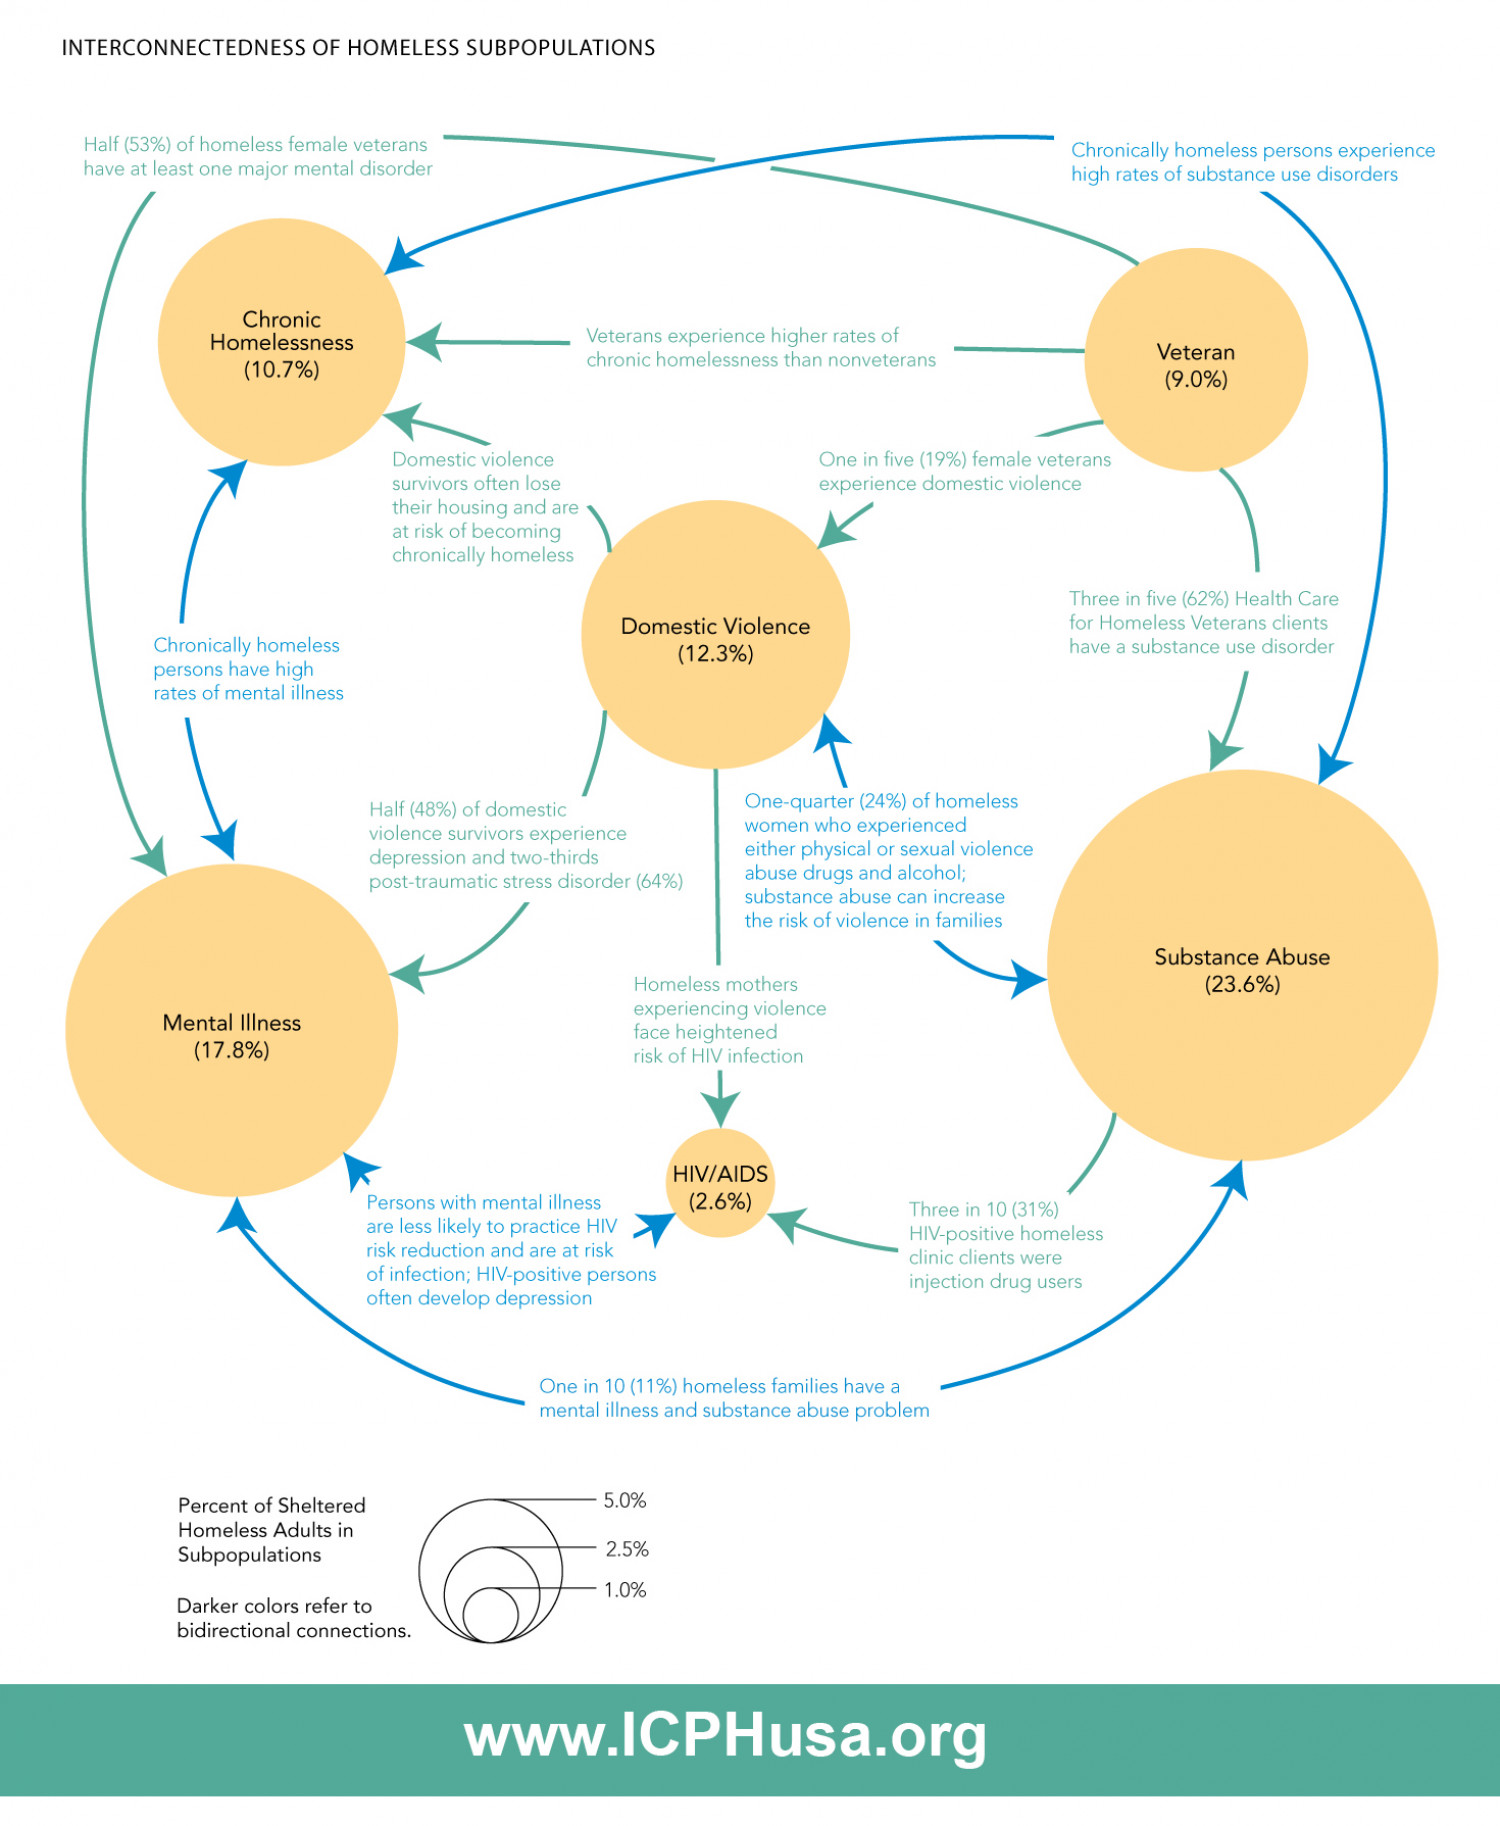 Interconnectedness of Homeless Subpopulations Infographic